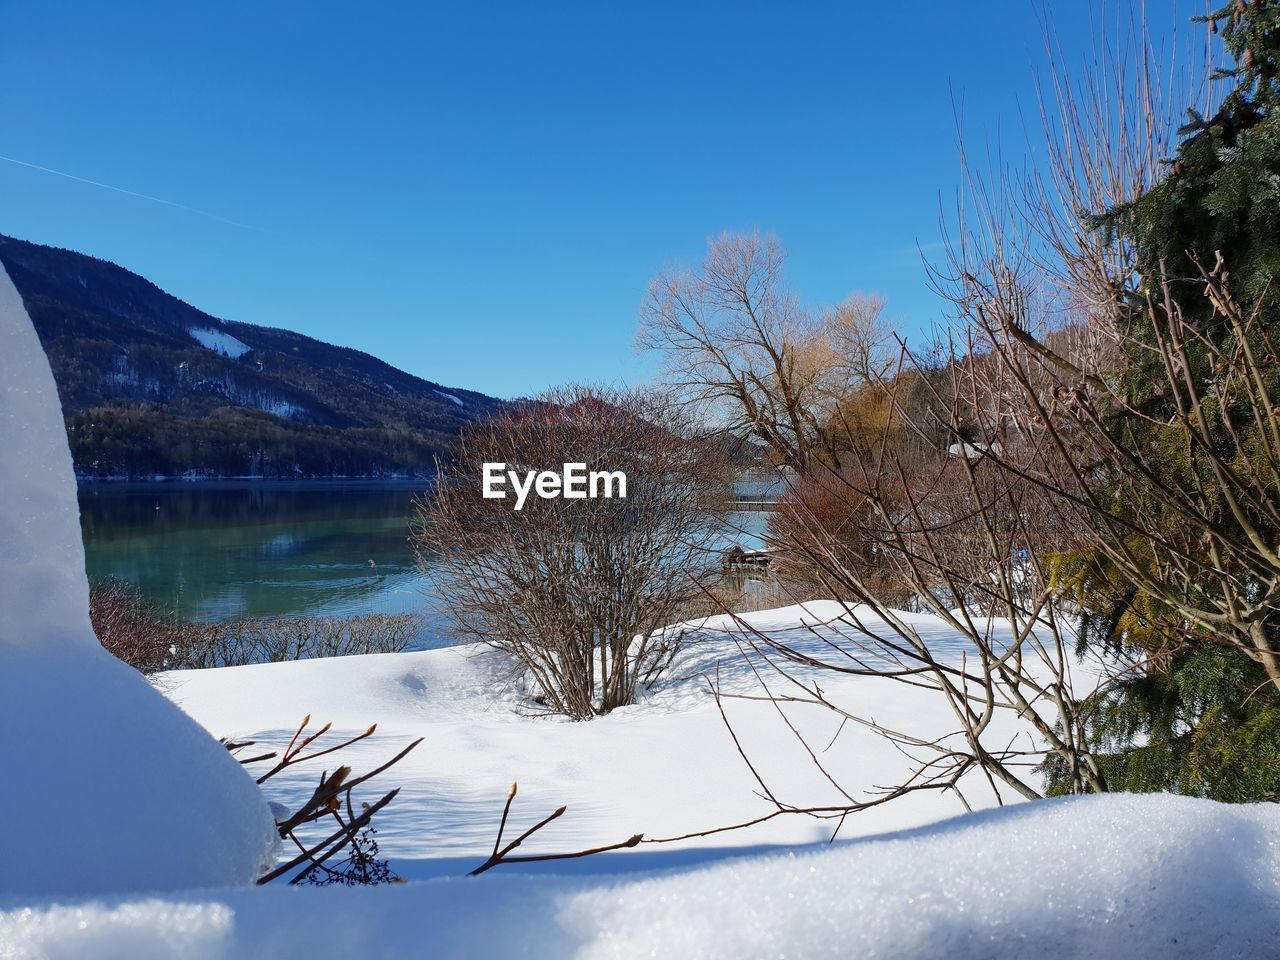 winter, cold temperature, tree, plant, snow, sky, tranquility, water, beauty in nature, scenics - nature, nature, mountain, tranquil scene, day, lake, blue, no people, non-urban scene, outdoors, snowcapped mountain